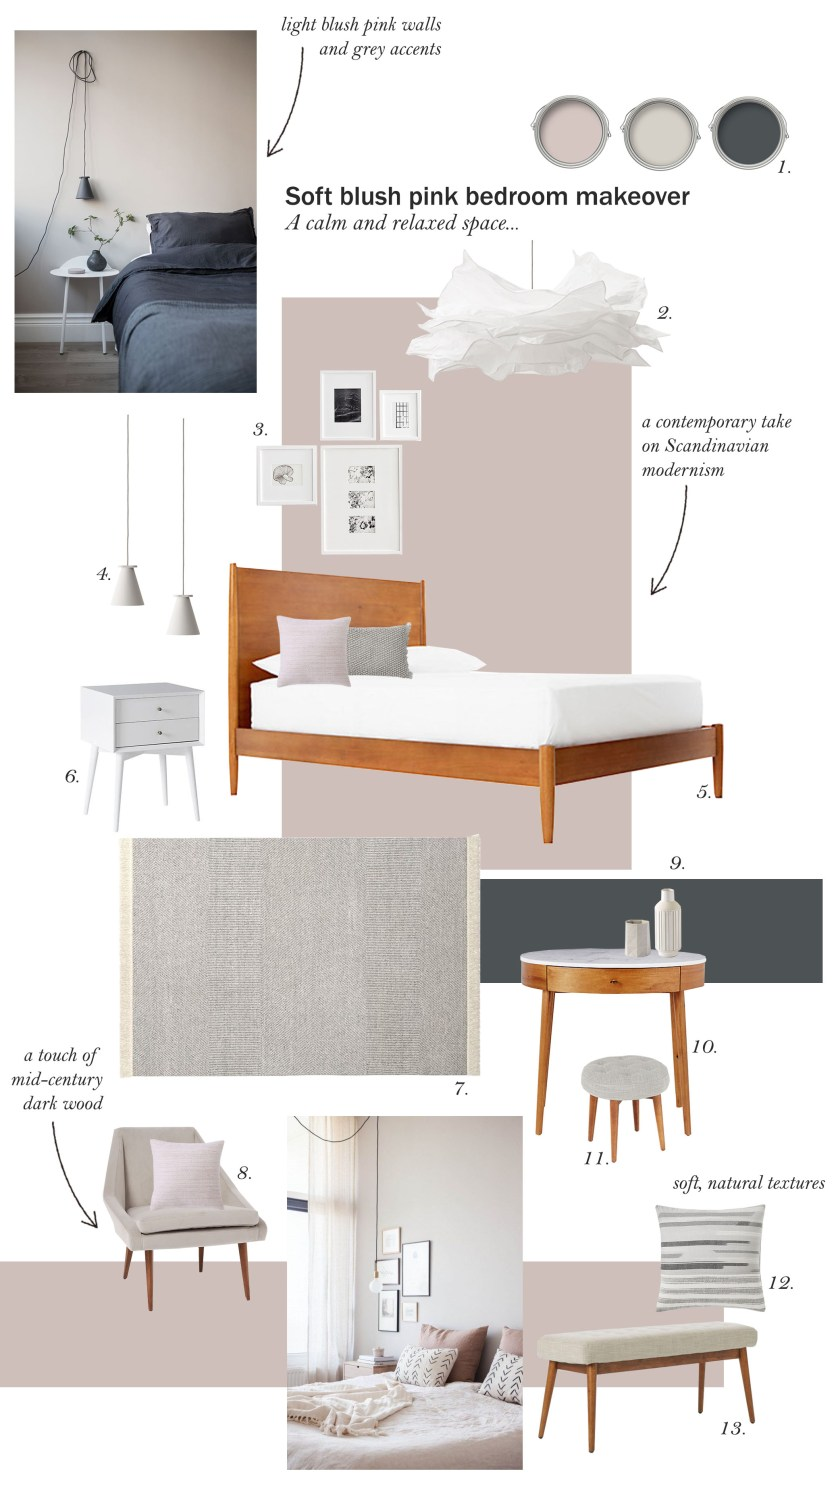 catesthill soft dusty pink bedroom makeover inspiration